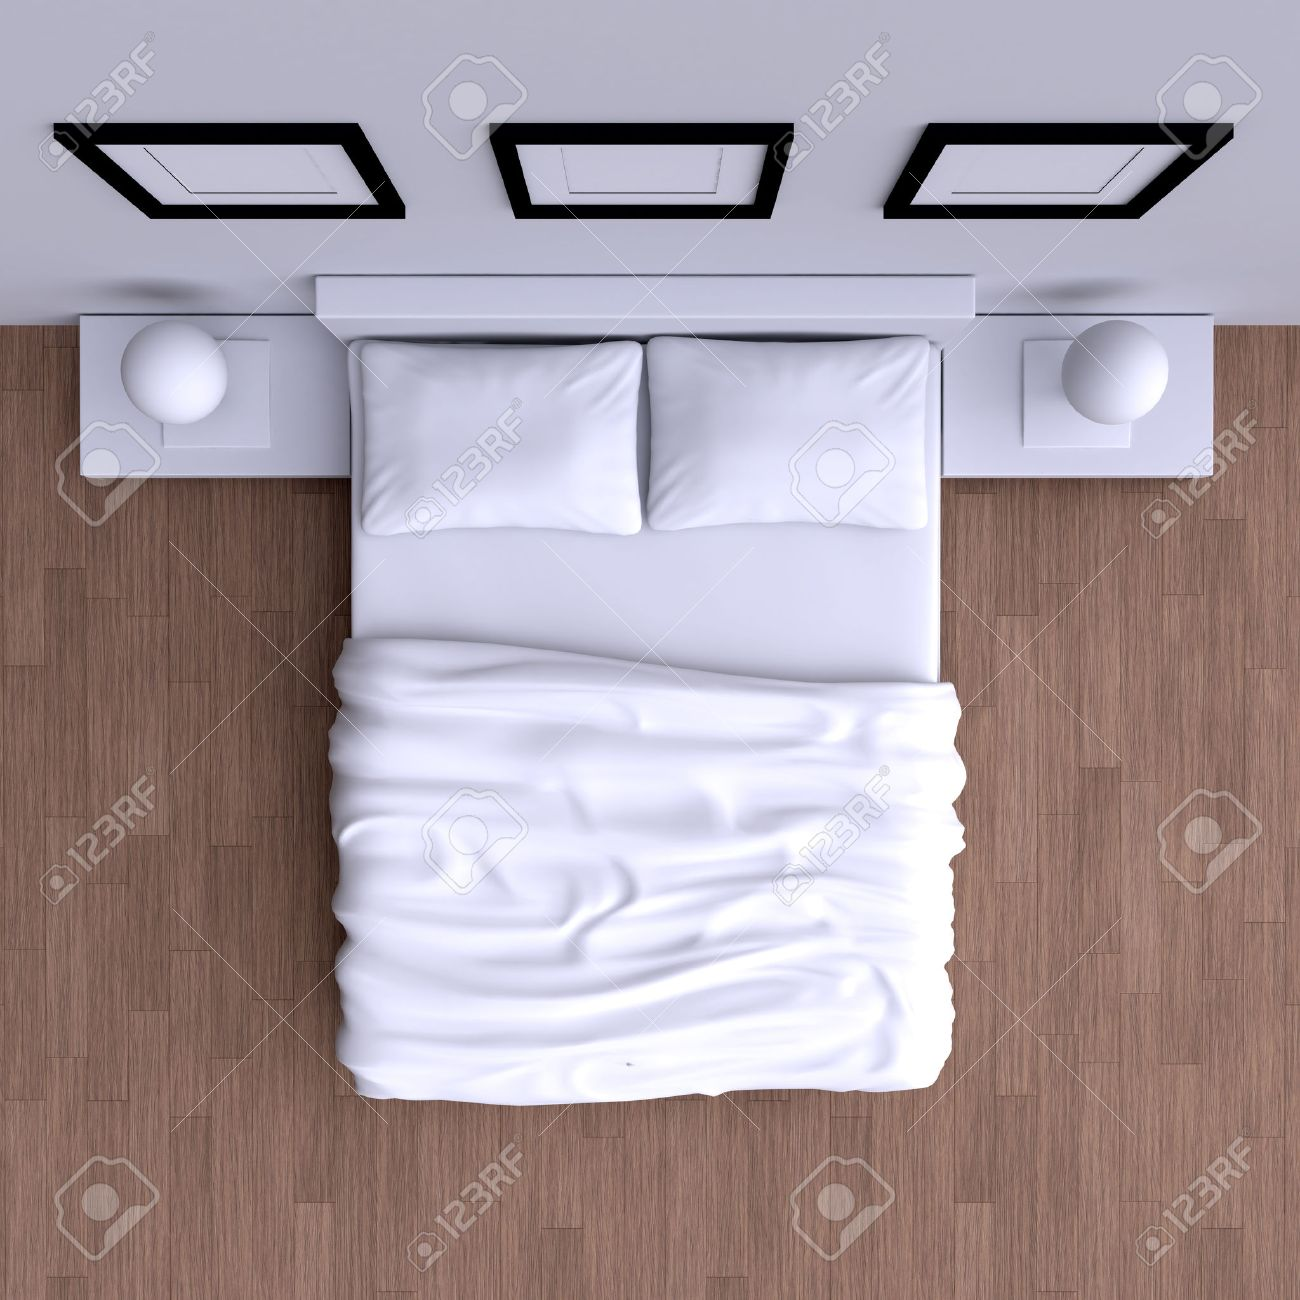 Double bed top view - Double Bed Bed With Pillows And A Blanket In The Corner Room 3d Illustration